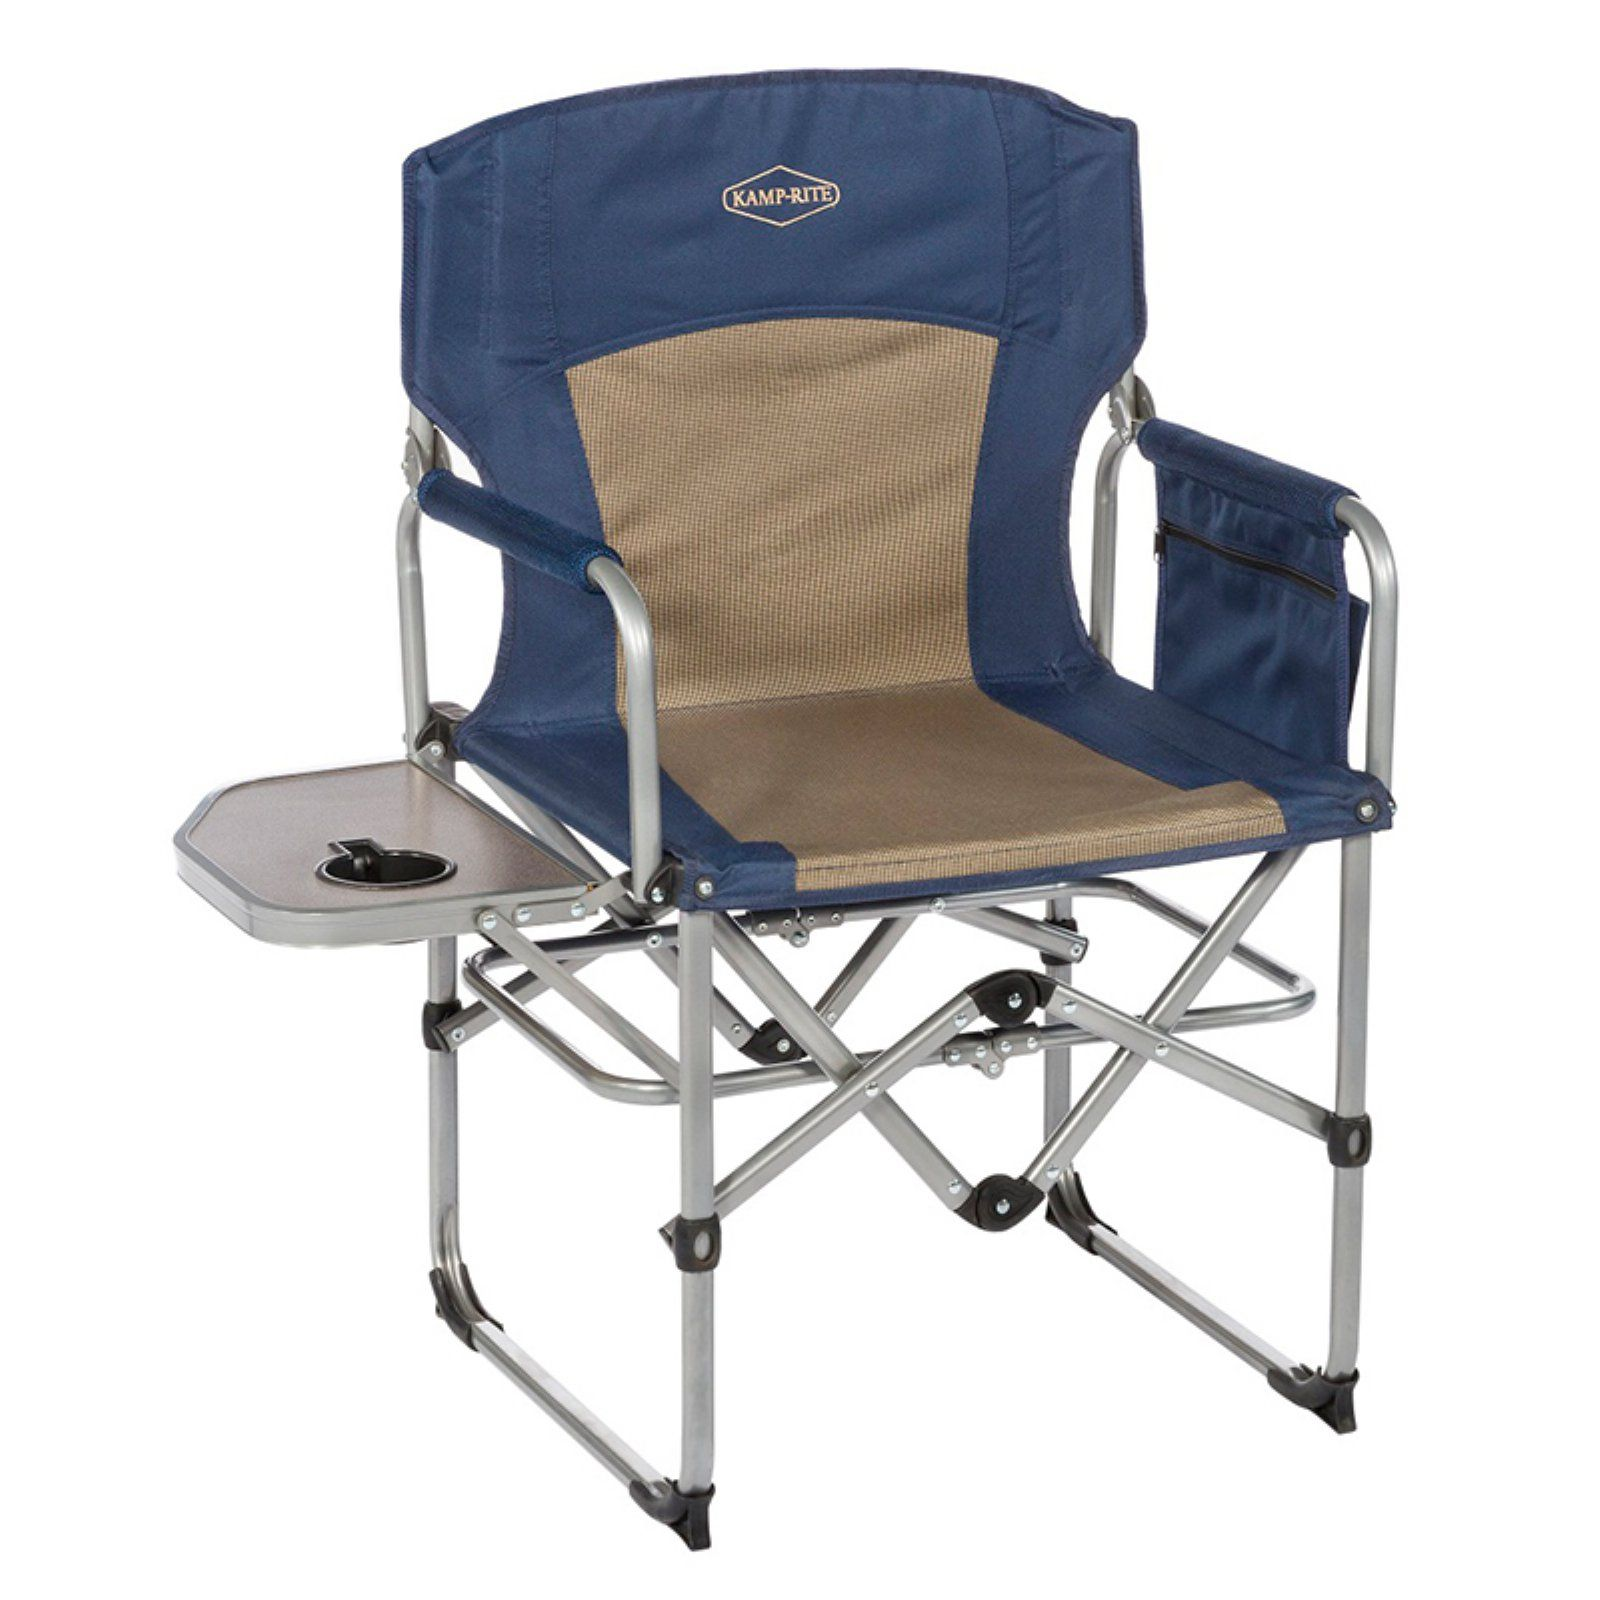 Wondrous Outdoor Kamp Rite Compact Director Chair Products In 2019 Dailytribune Chair Design For Home Dailytribuneorg